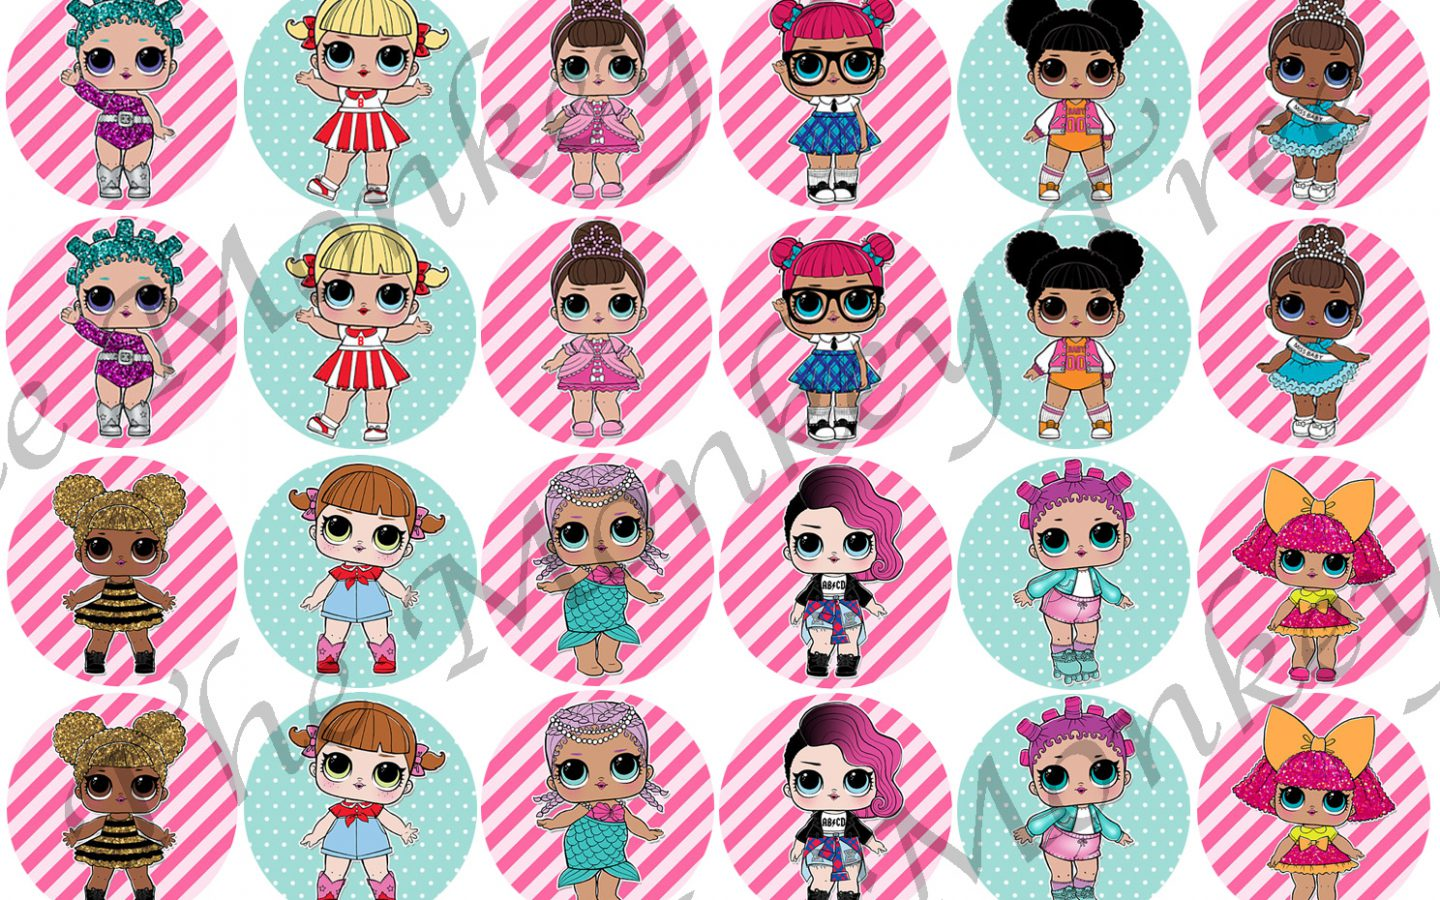 Beautiful Lol Dolls Pictures To Colour Doll Images - Lol Surprise , HD Wallpaper & Backgrounds